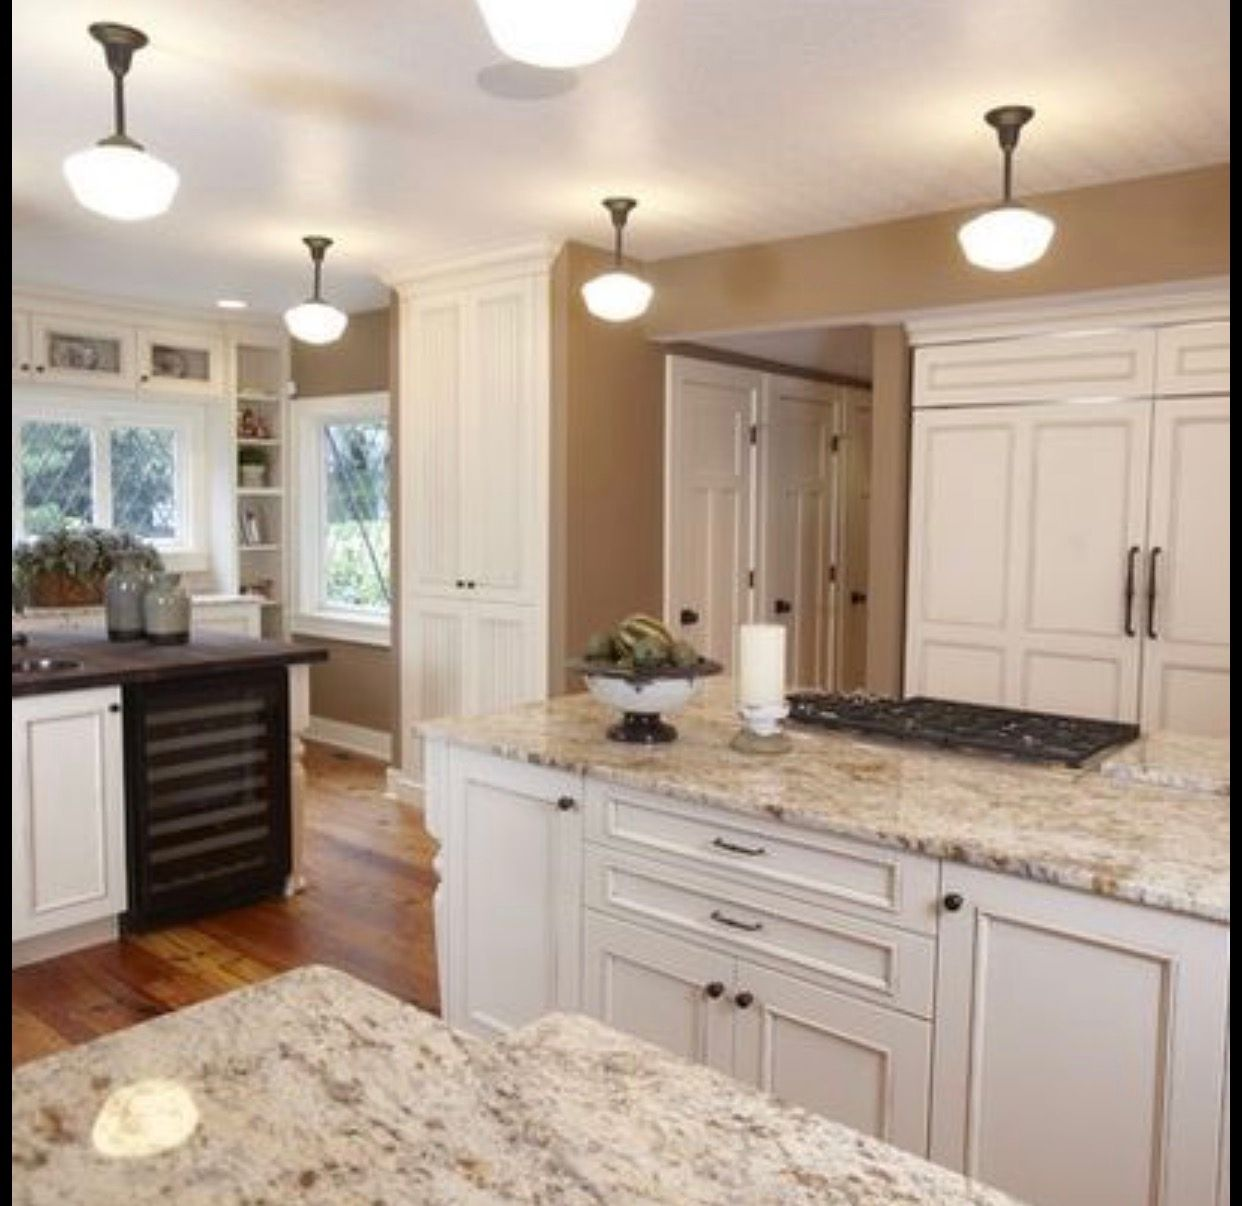 Cotton White Cabinets Kitchen Cabinets And Granite Antique White Kitchen Antique White Kitchen Cabinets